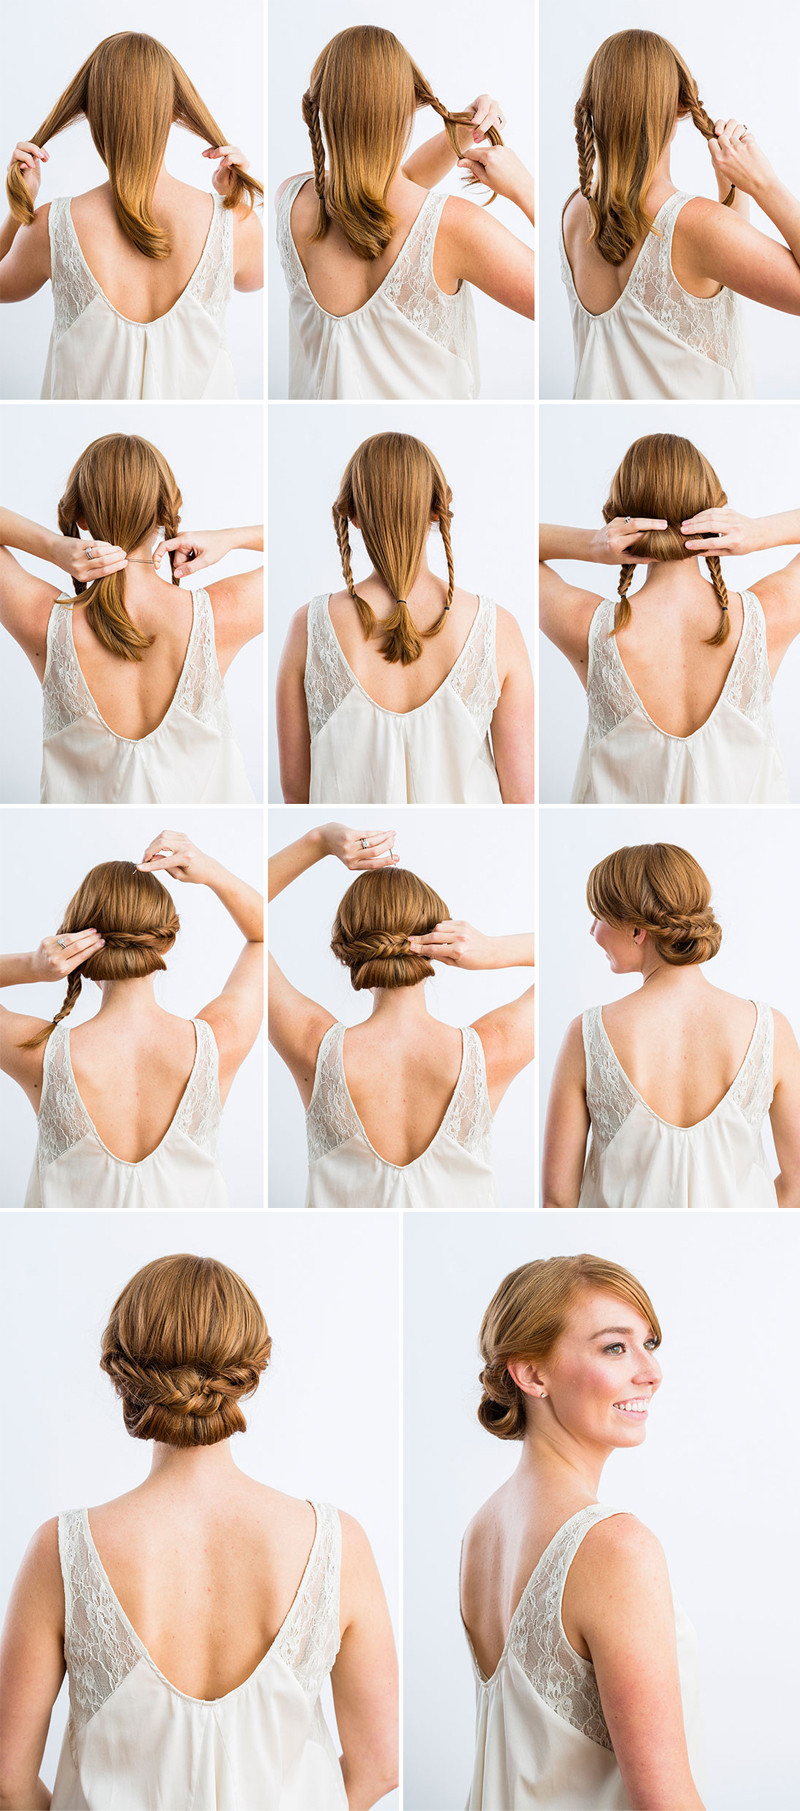 Best ideas about DIY Wedding Hair . Save or Pin 10 Best DIY Wedding Hairstyles with Tutorials Now.